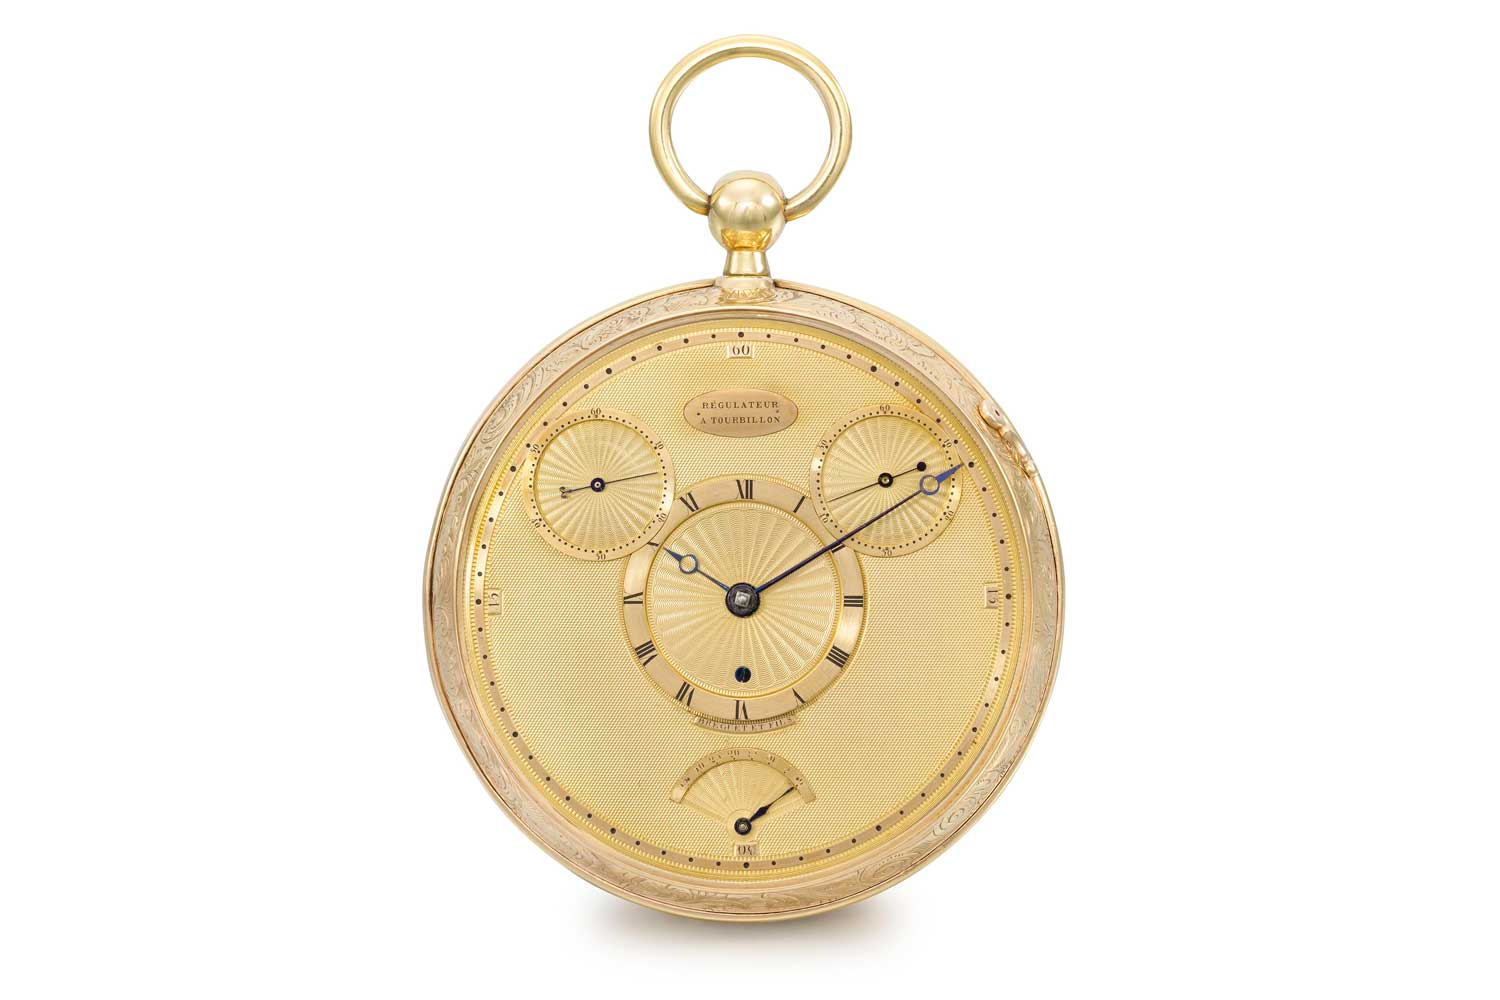 Abraham-Louis Breguet's very first four-minute tourbillon and his third tourbillon watch ever made, best known as the no°1176, the timepiece is an 18K gold openface pocket chronometer with four minute tourbillon, échappement naturel, double subsidiary seconds, power reserve, stop-seconds feature and gold regulator dial; signed Breguet et Fils, No. 1176, case no. 1282, sold to Comte Potocki through Monsieur Moreau in St. Petersburg on 12 February 1809 for the sum of 4,600 Francs (Image: breguet.com)